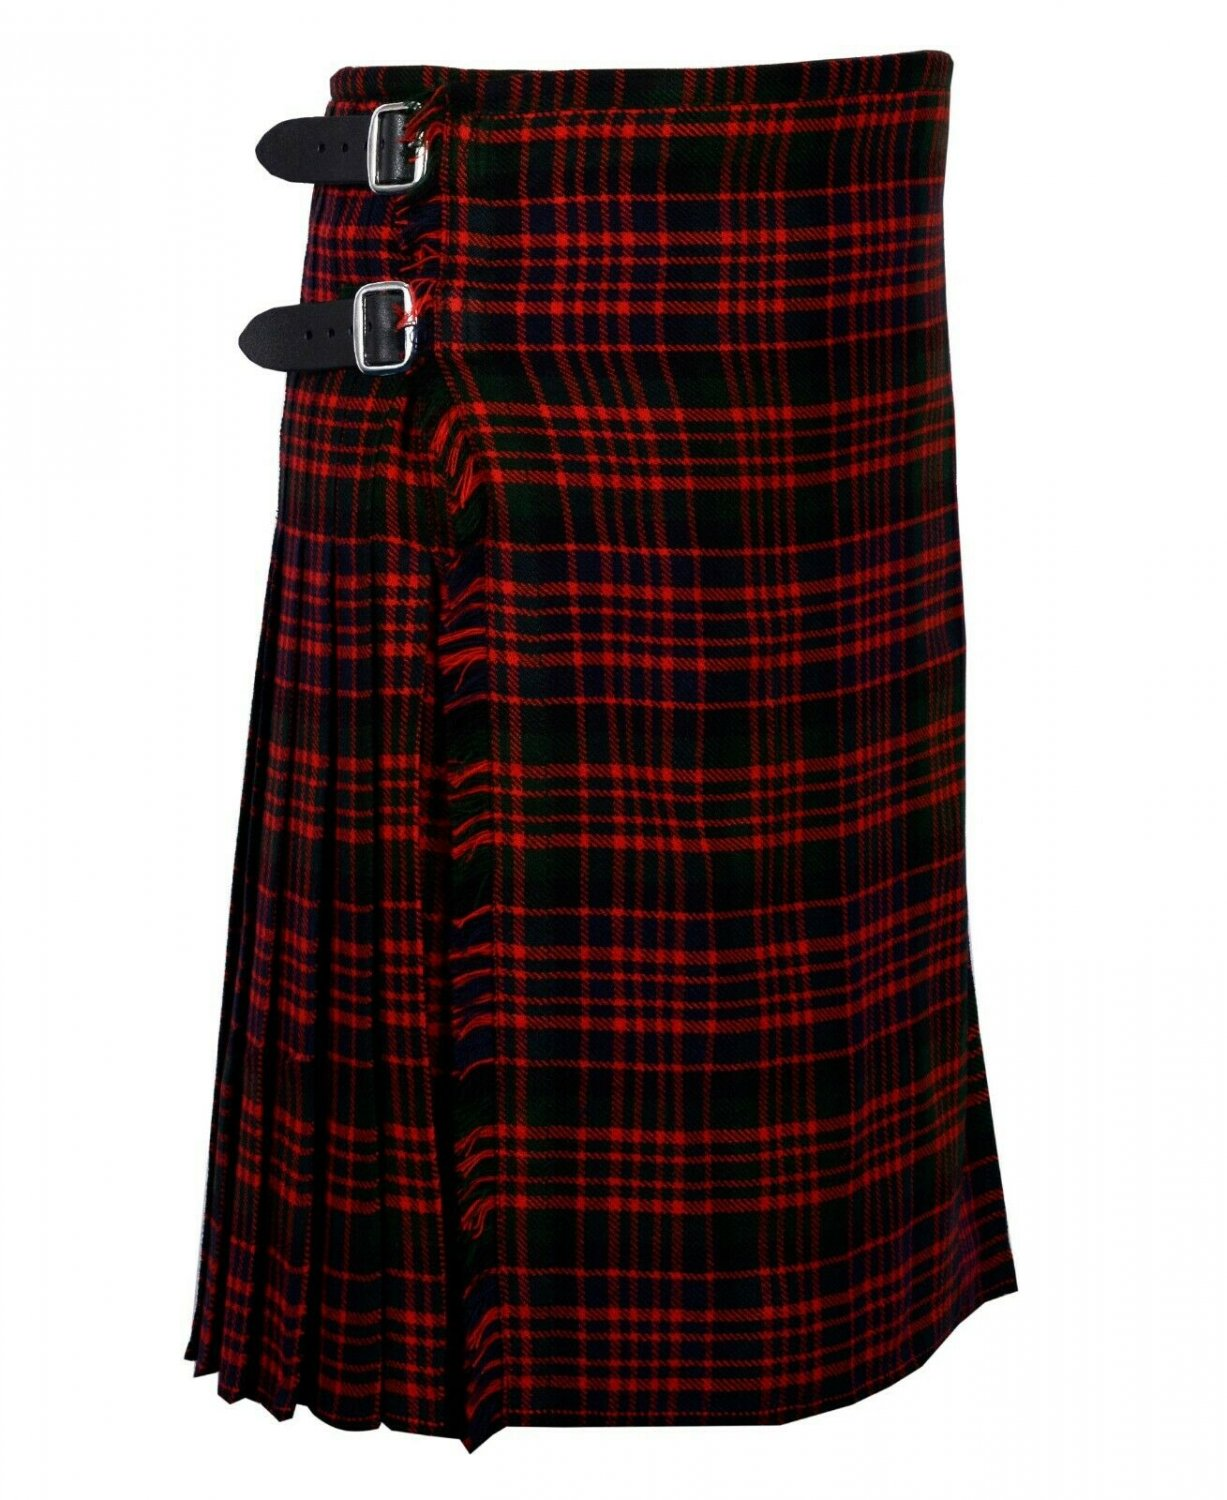 36 Inches Waist Traditional 8 Yard Handmade Scottish Kilt For Men - Macdonald Turtan